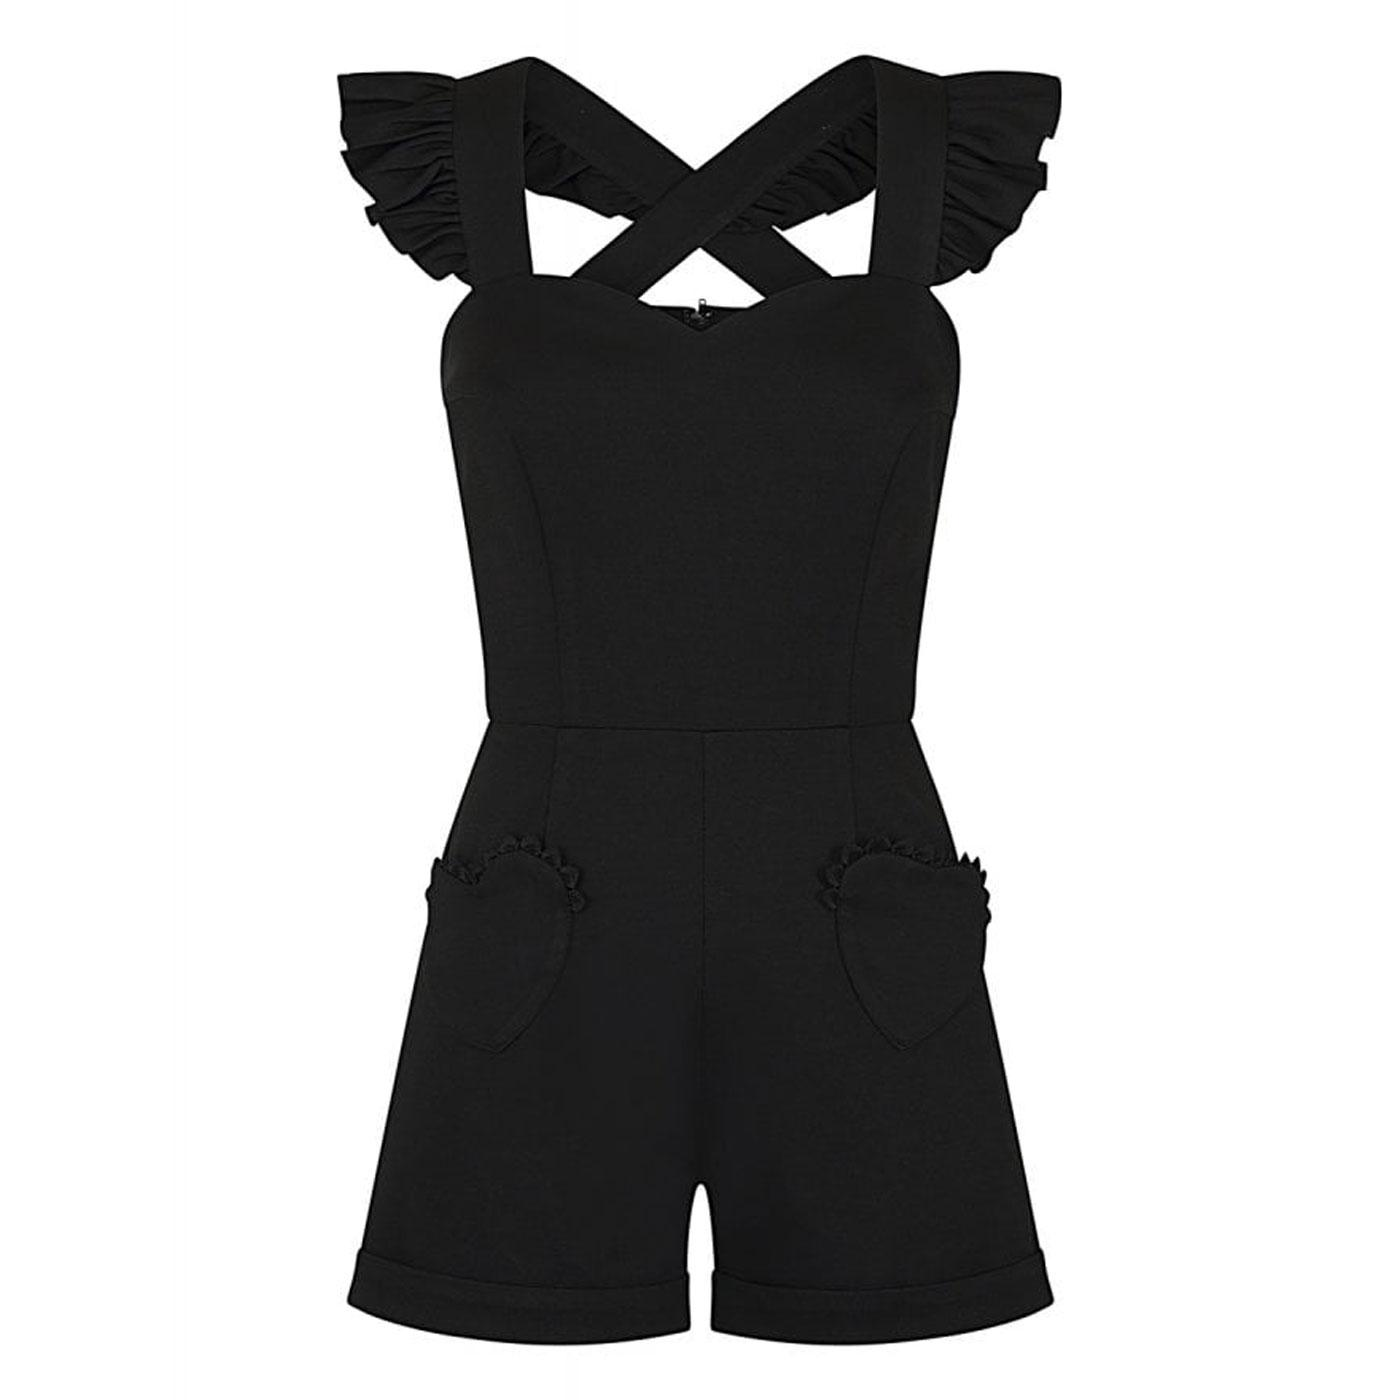 Lisa COLLECTIF Vintage 50s Summer Black Playsuit